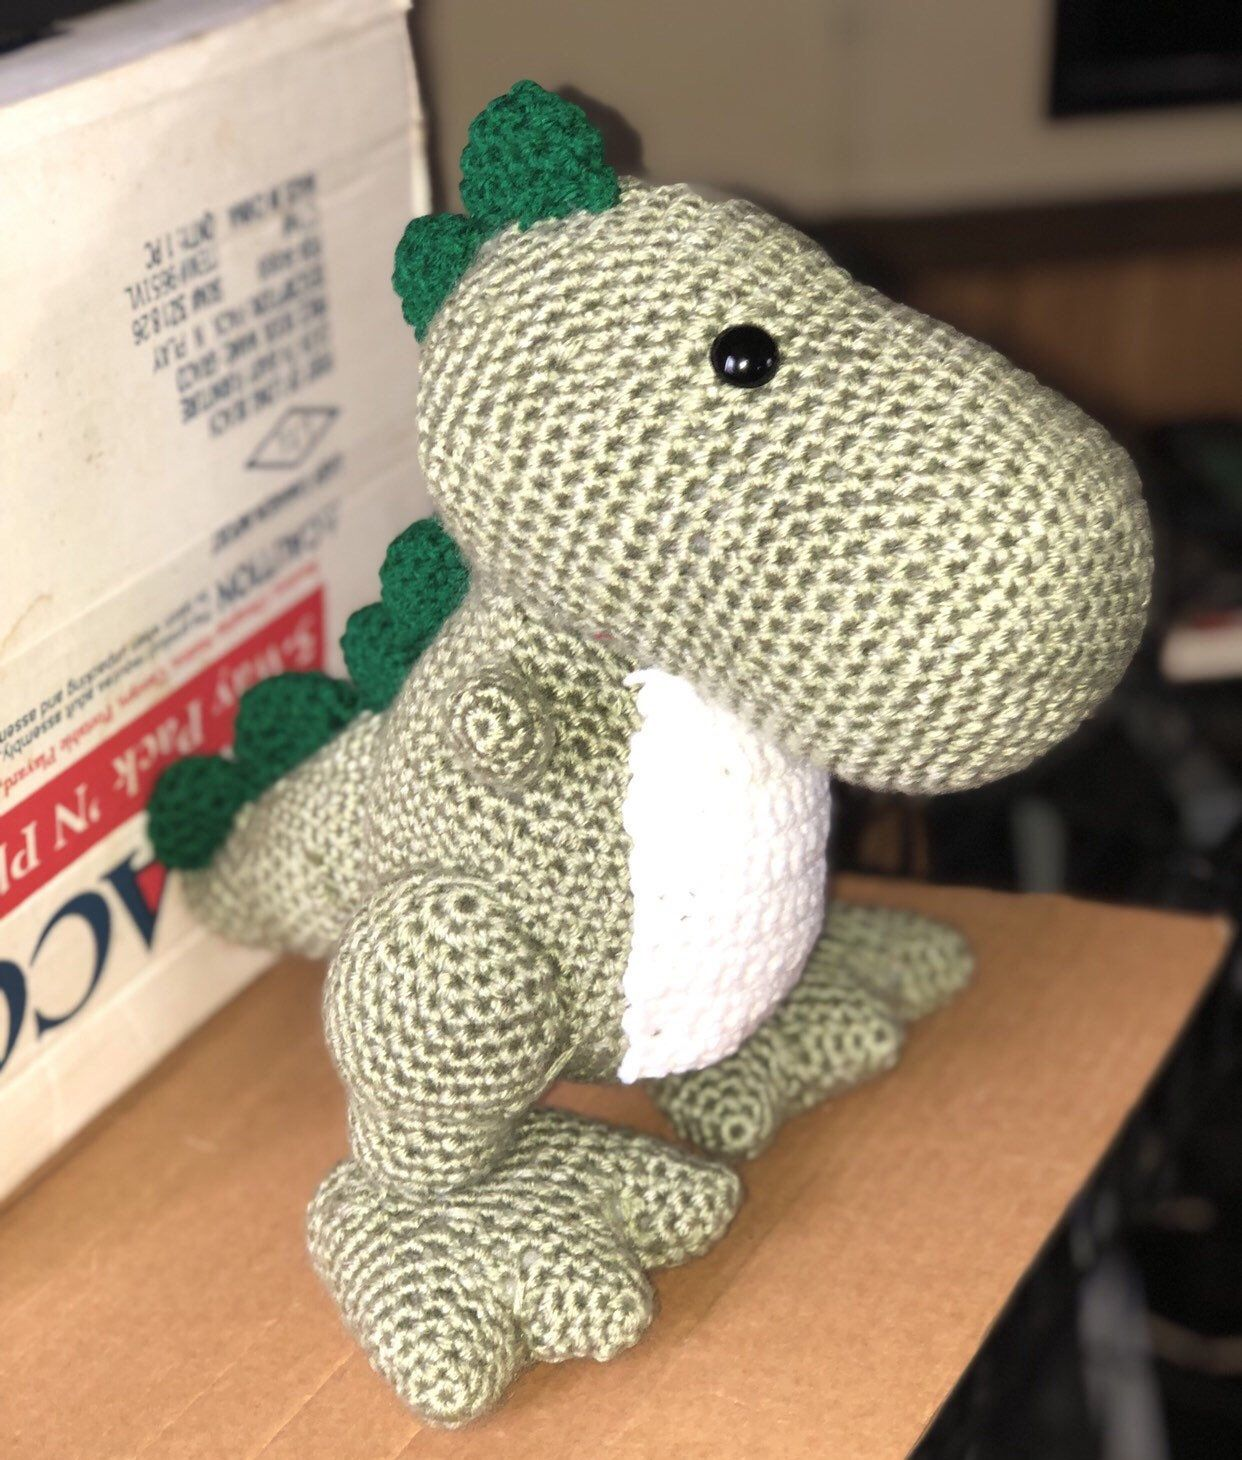 T Rex Handmade, Etsy, Dinosaur stuffed animal